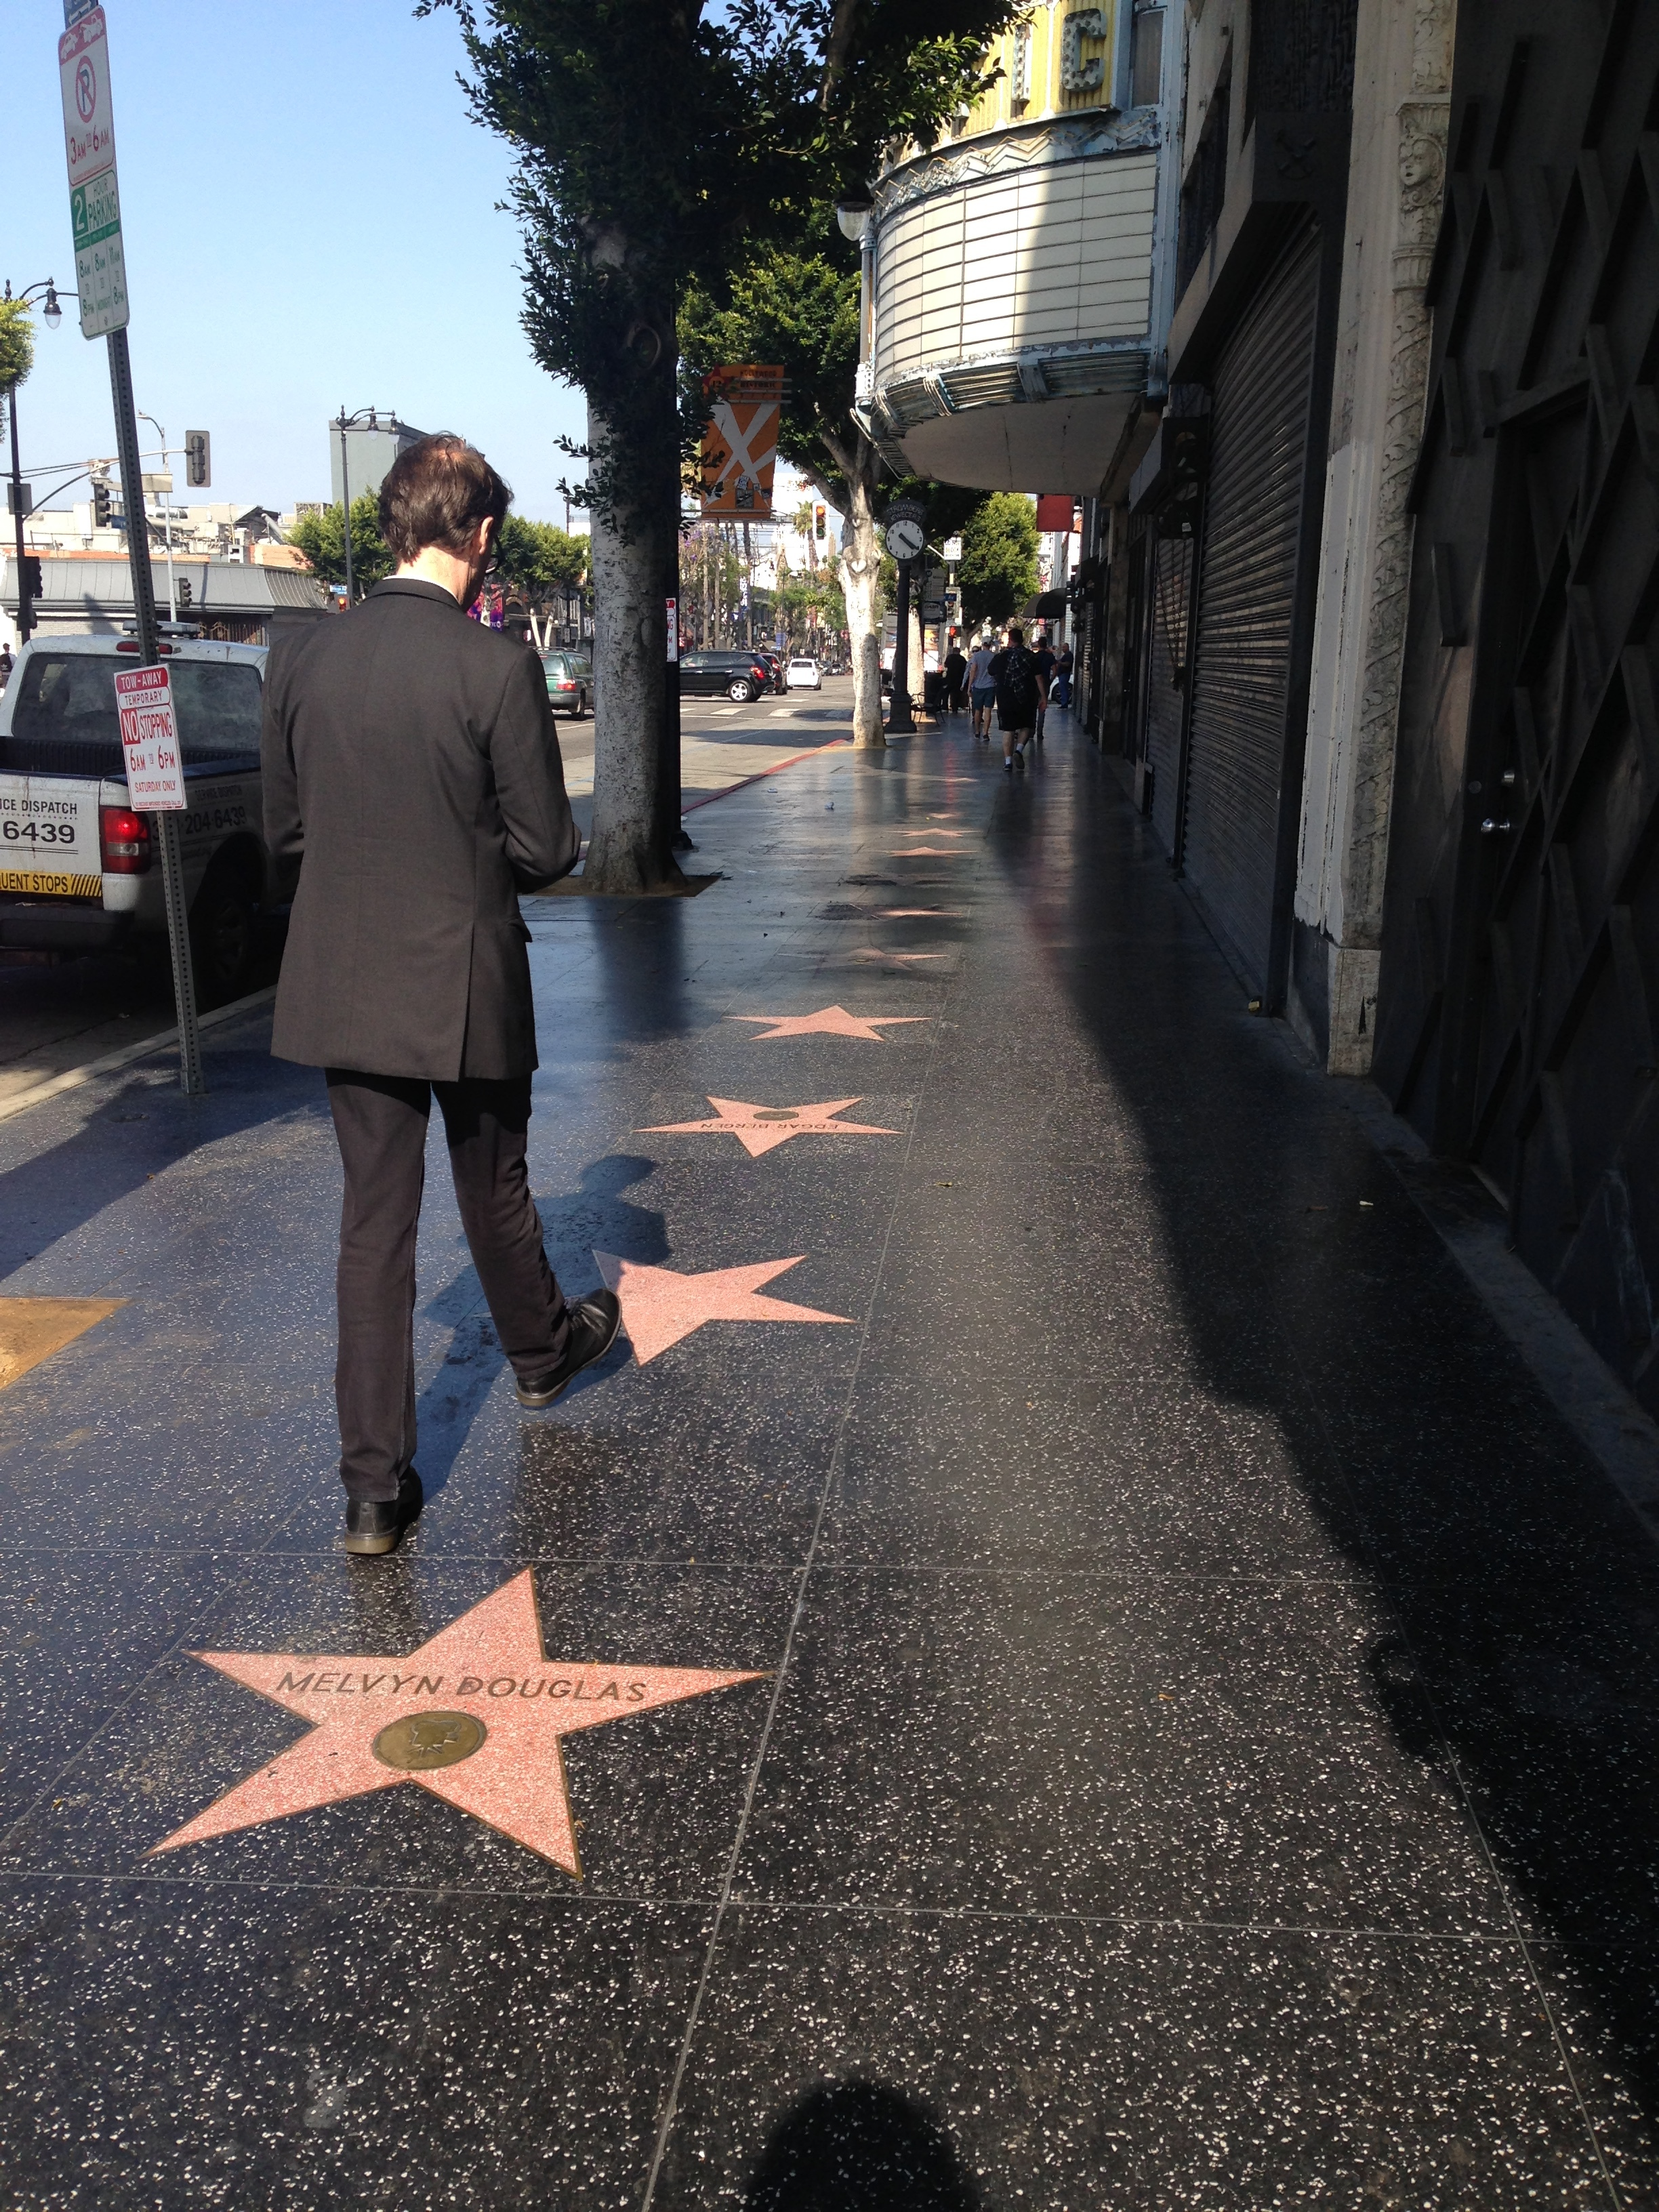 ^ Walking with the stars